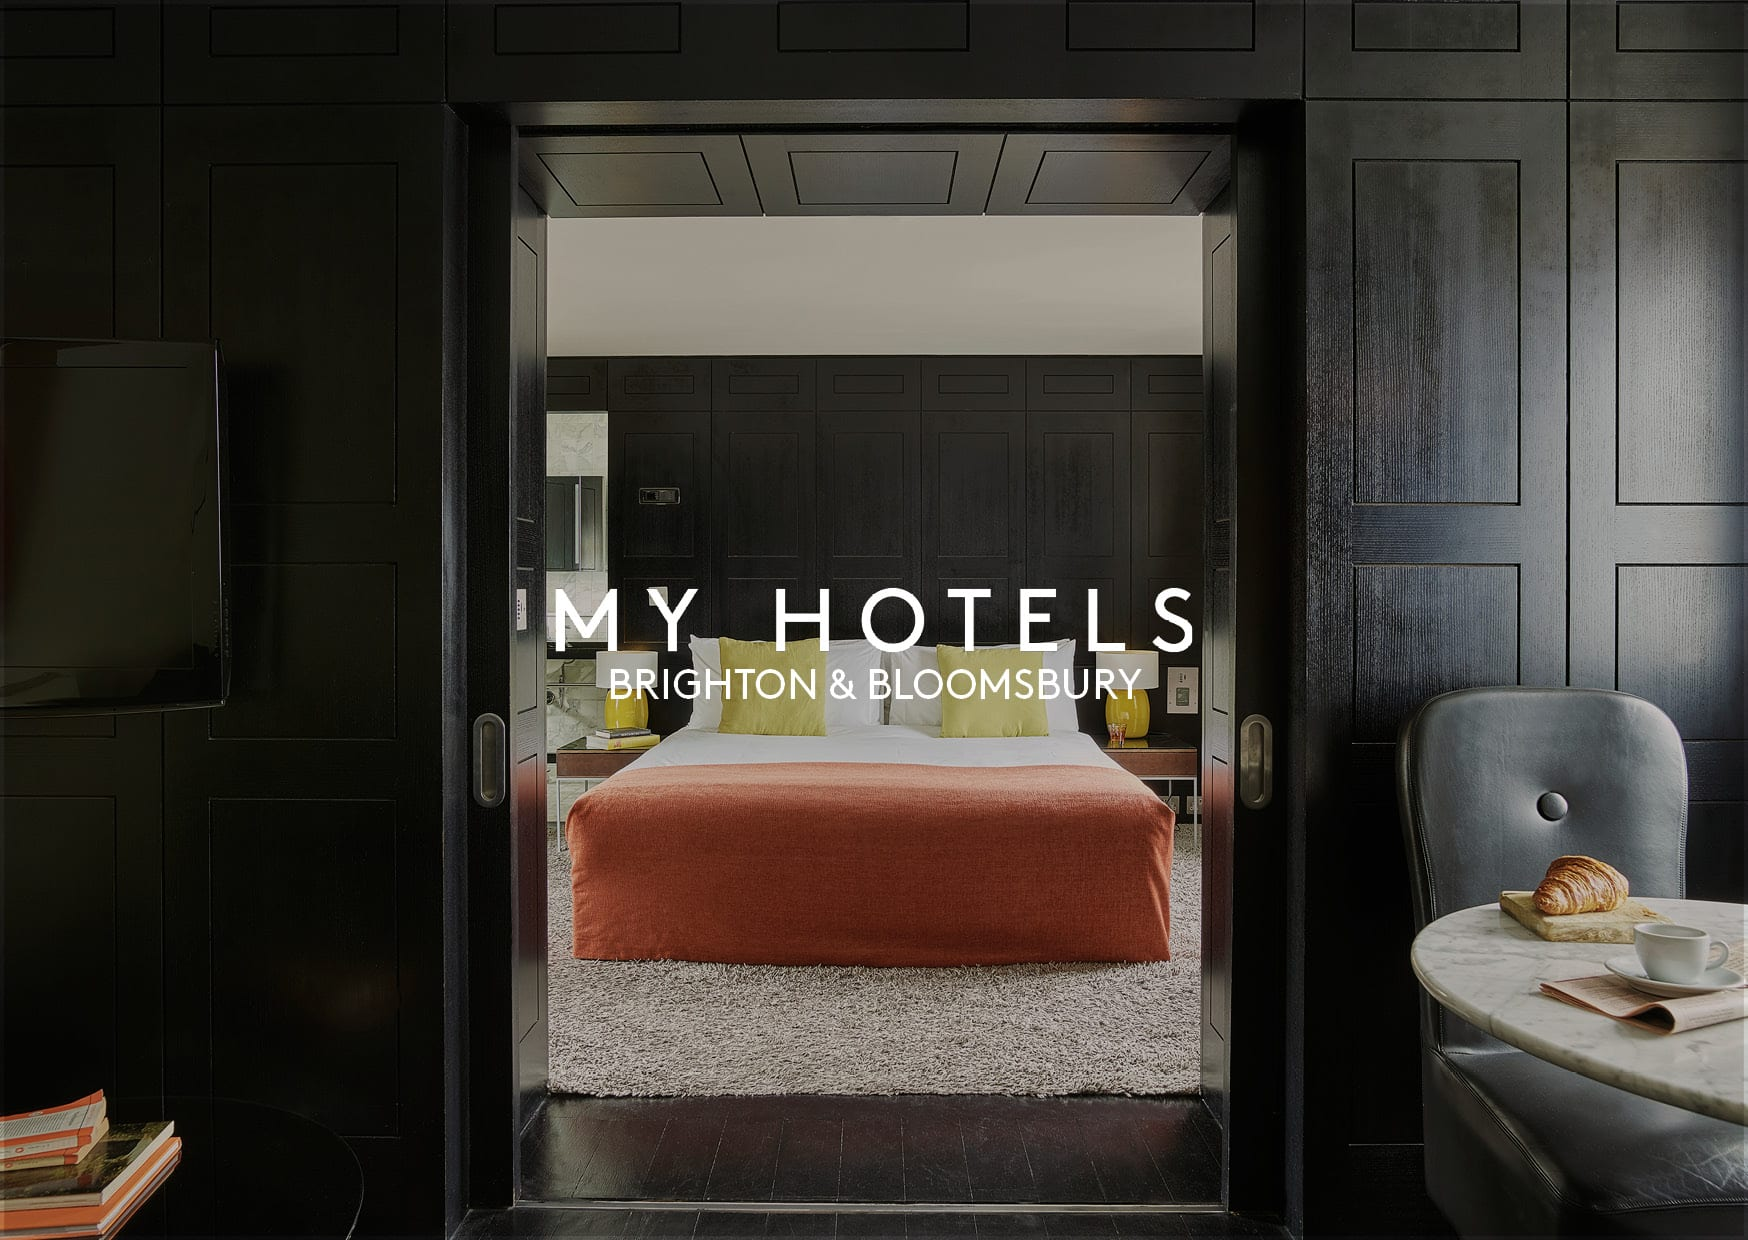 My Hotels